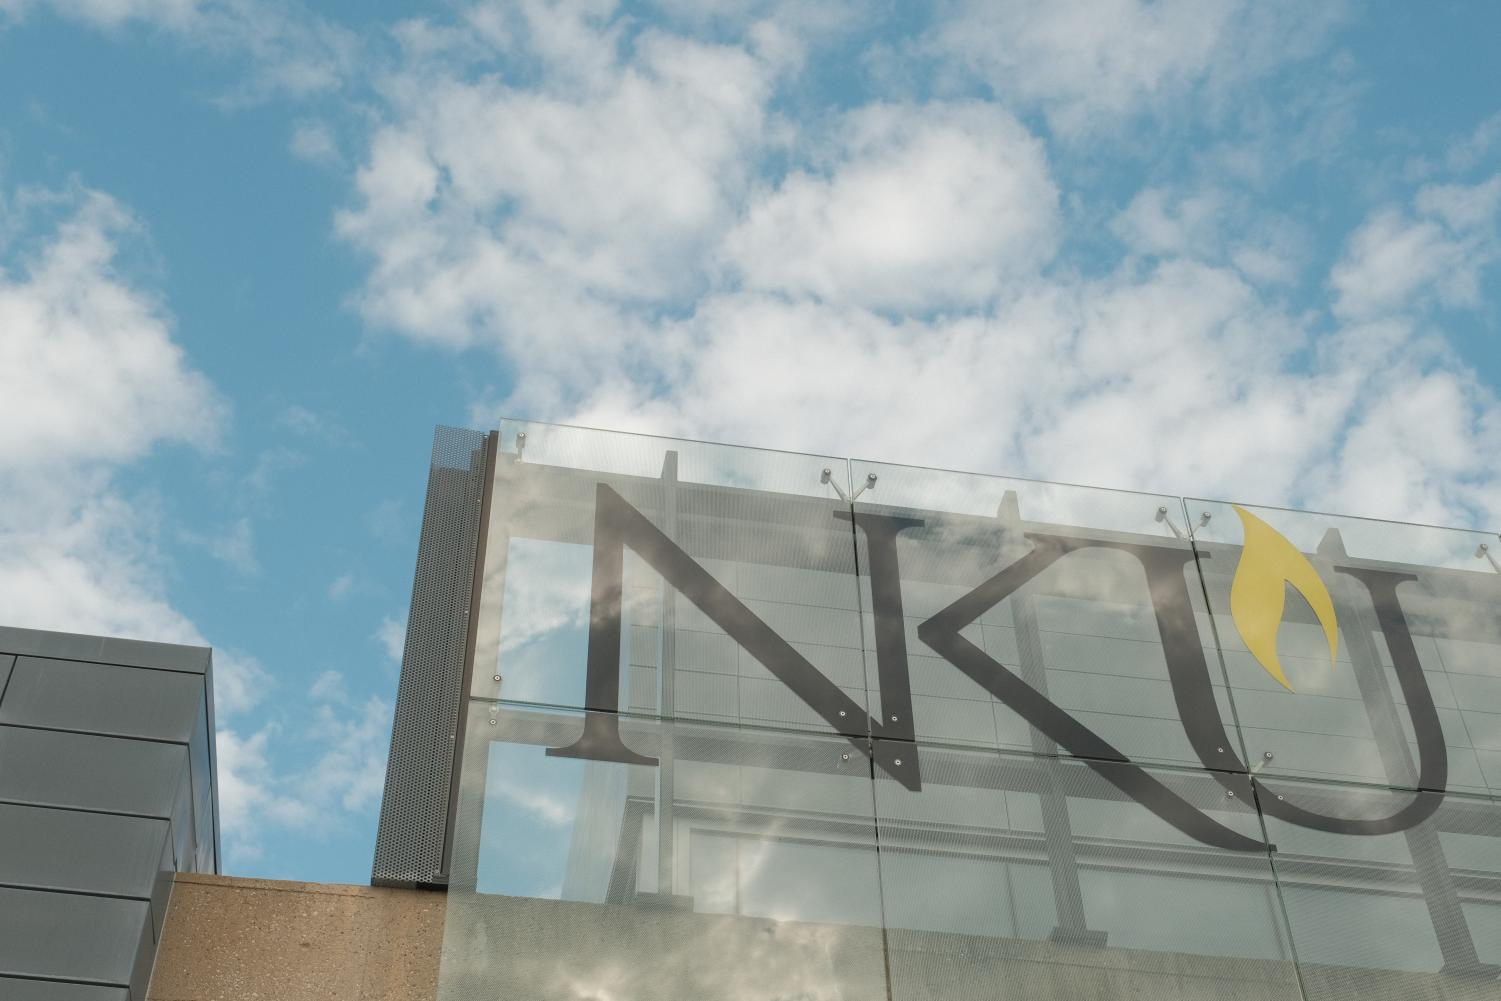 A sign that, in black text, says NKU. Clouds are in the sky.